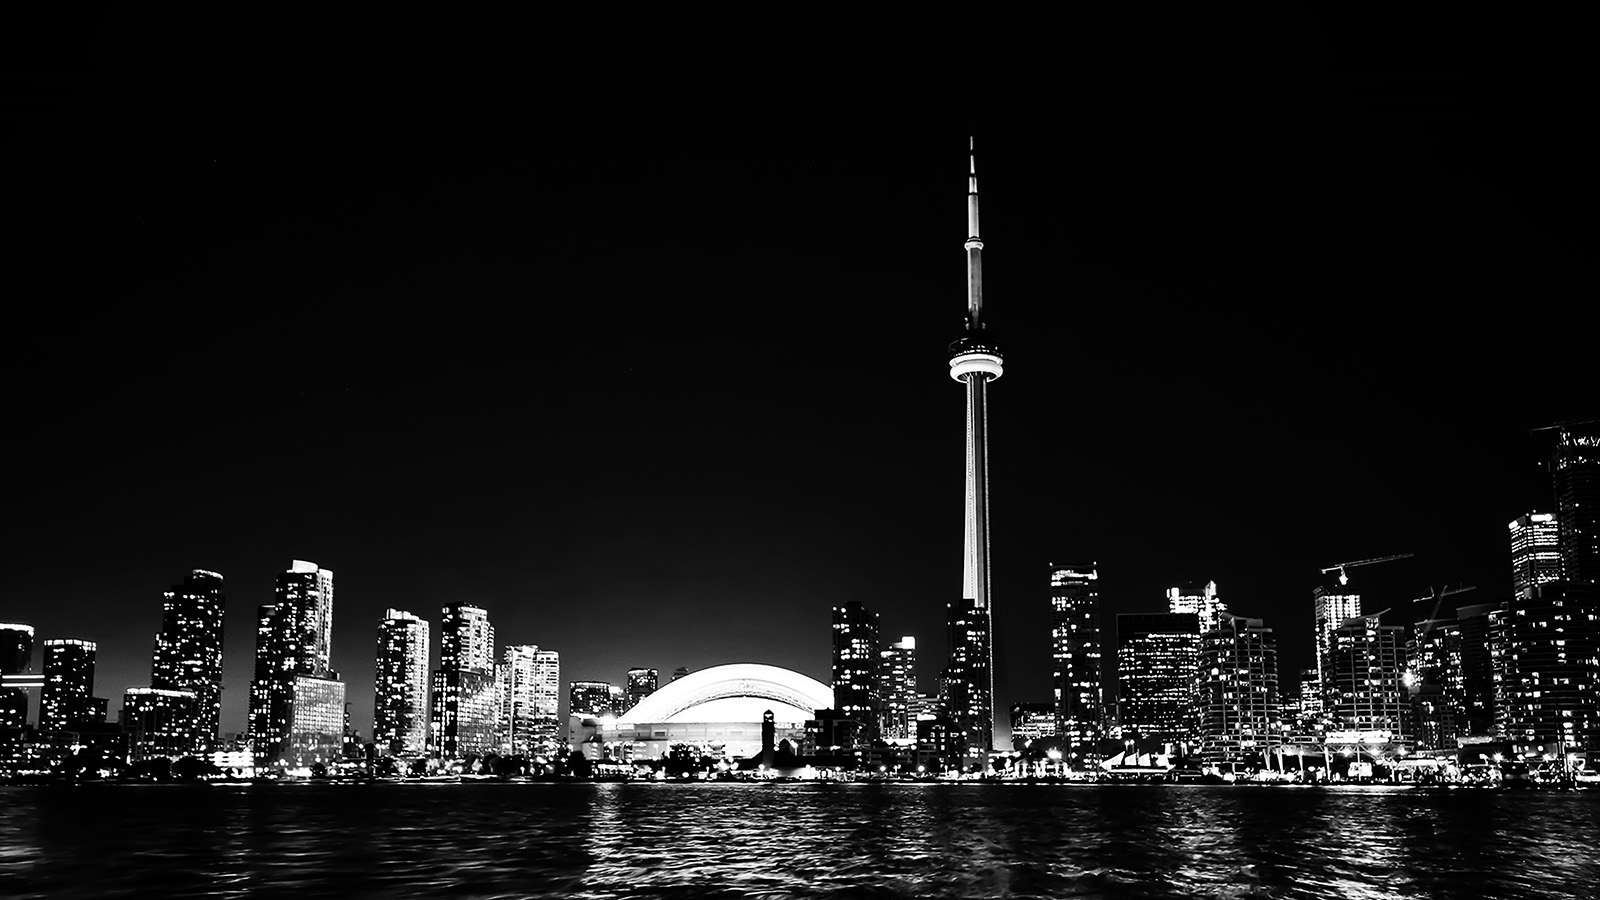 Fall Backgrounds Wallpaper At Night Mt45 Toronto City Night Missing Tower Dark Cityview Bw